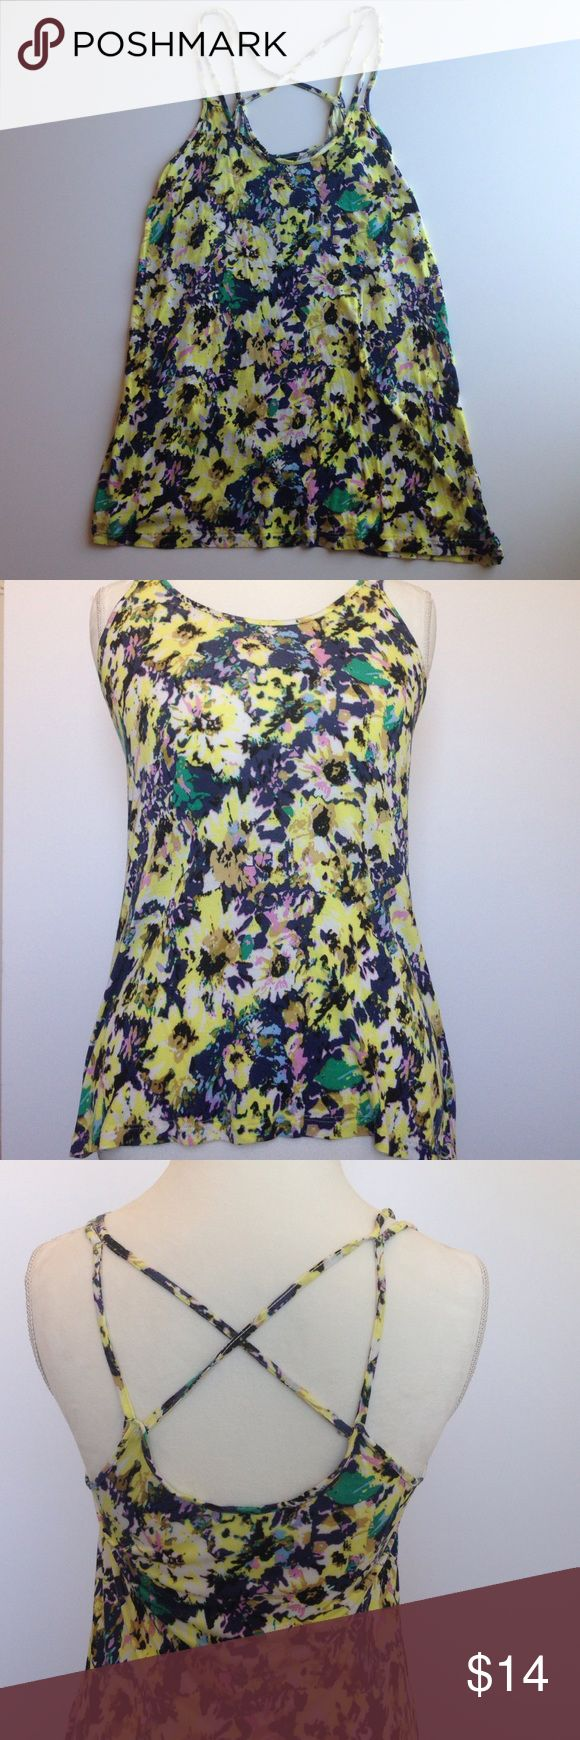 Floral strappy top Lightly worn but in great condition! Top is flowy and flattering. Soft material. Waist 28 inches. Length 25 inches H&M Tops Tank Tops